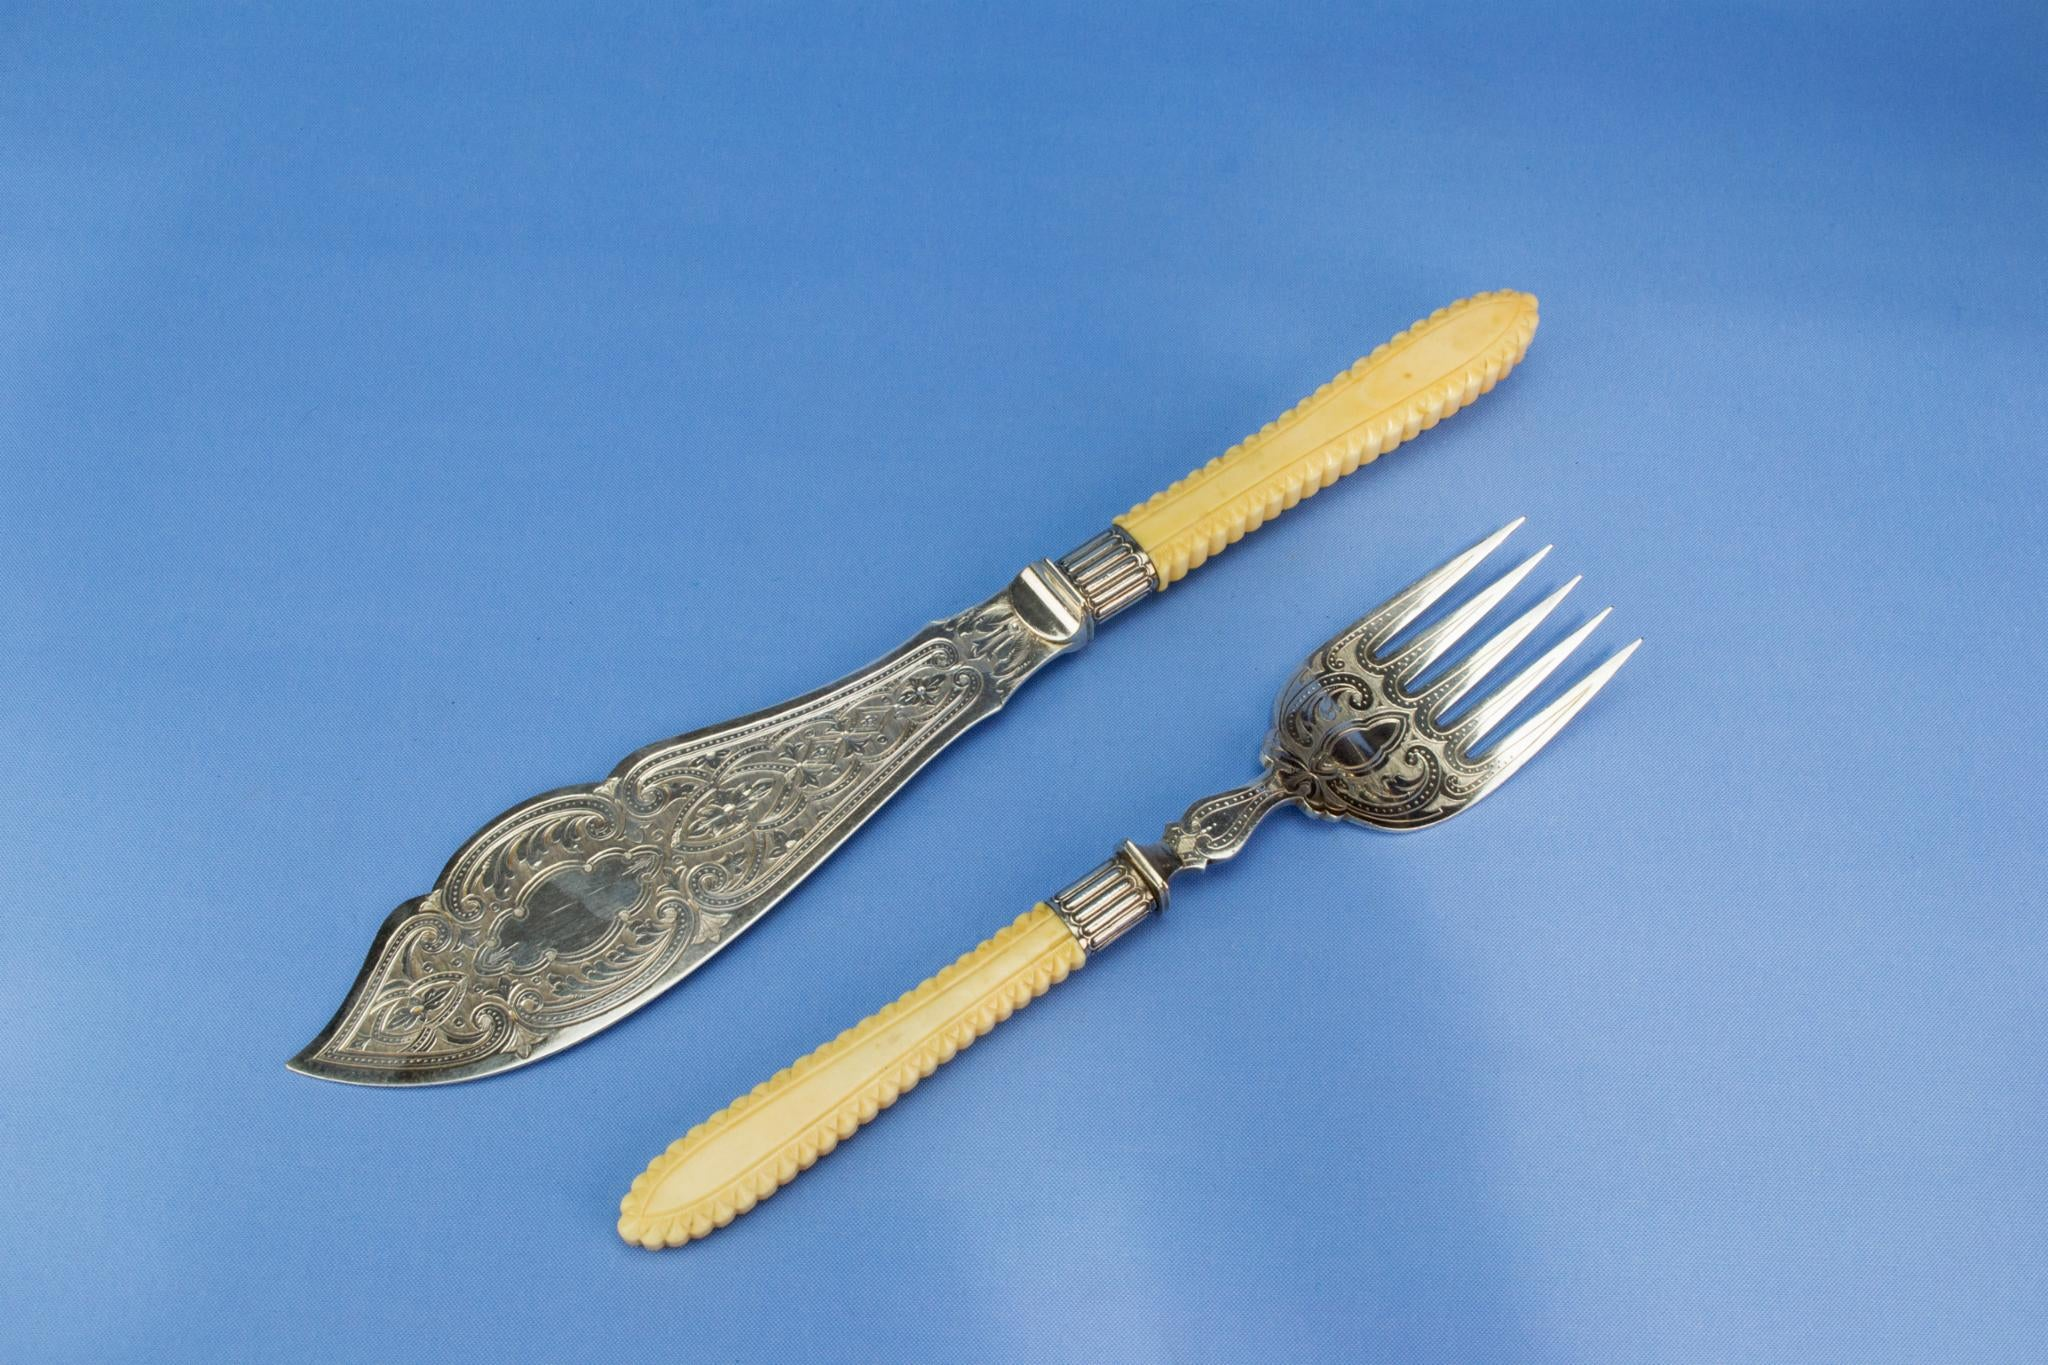 Silver plated serving fork and knife set, English 1890s